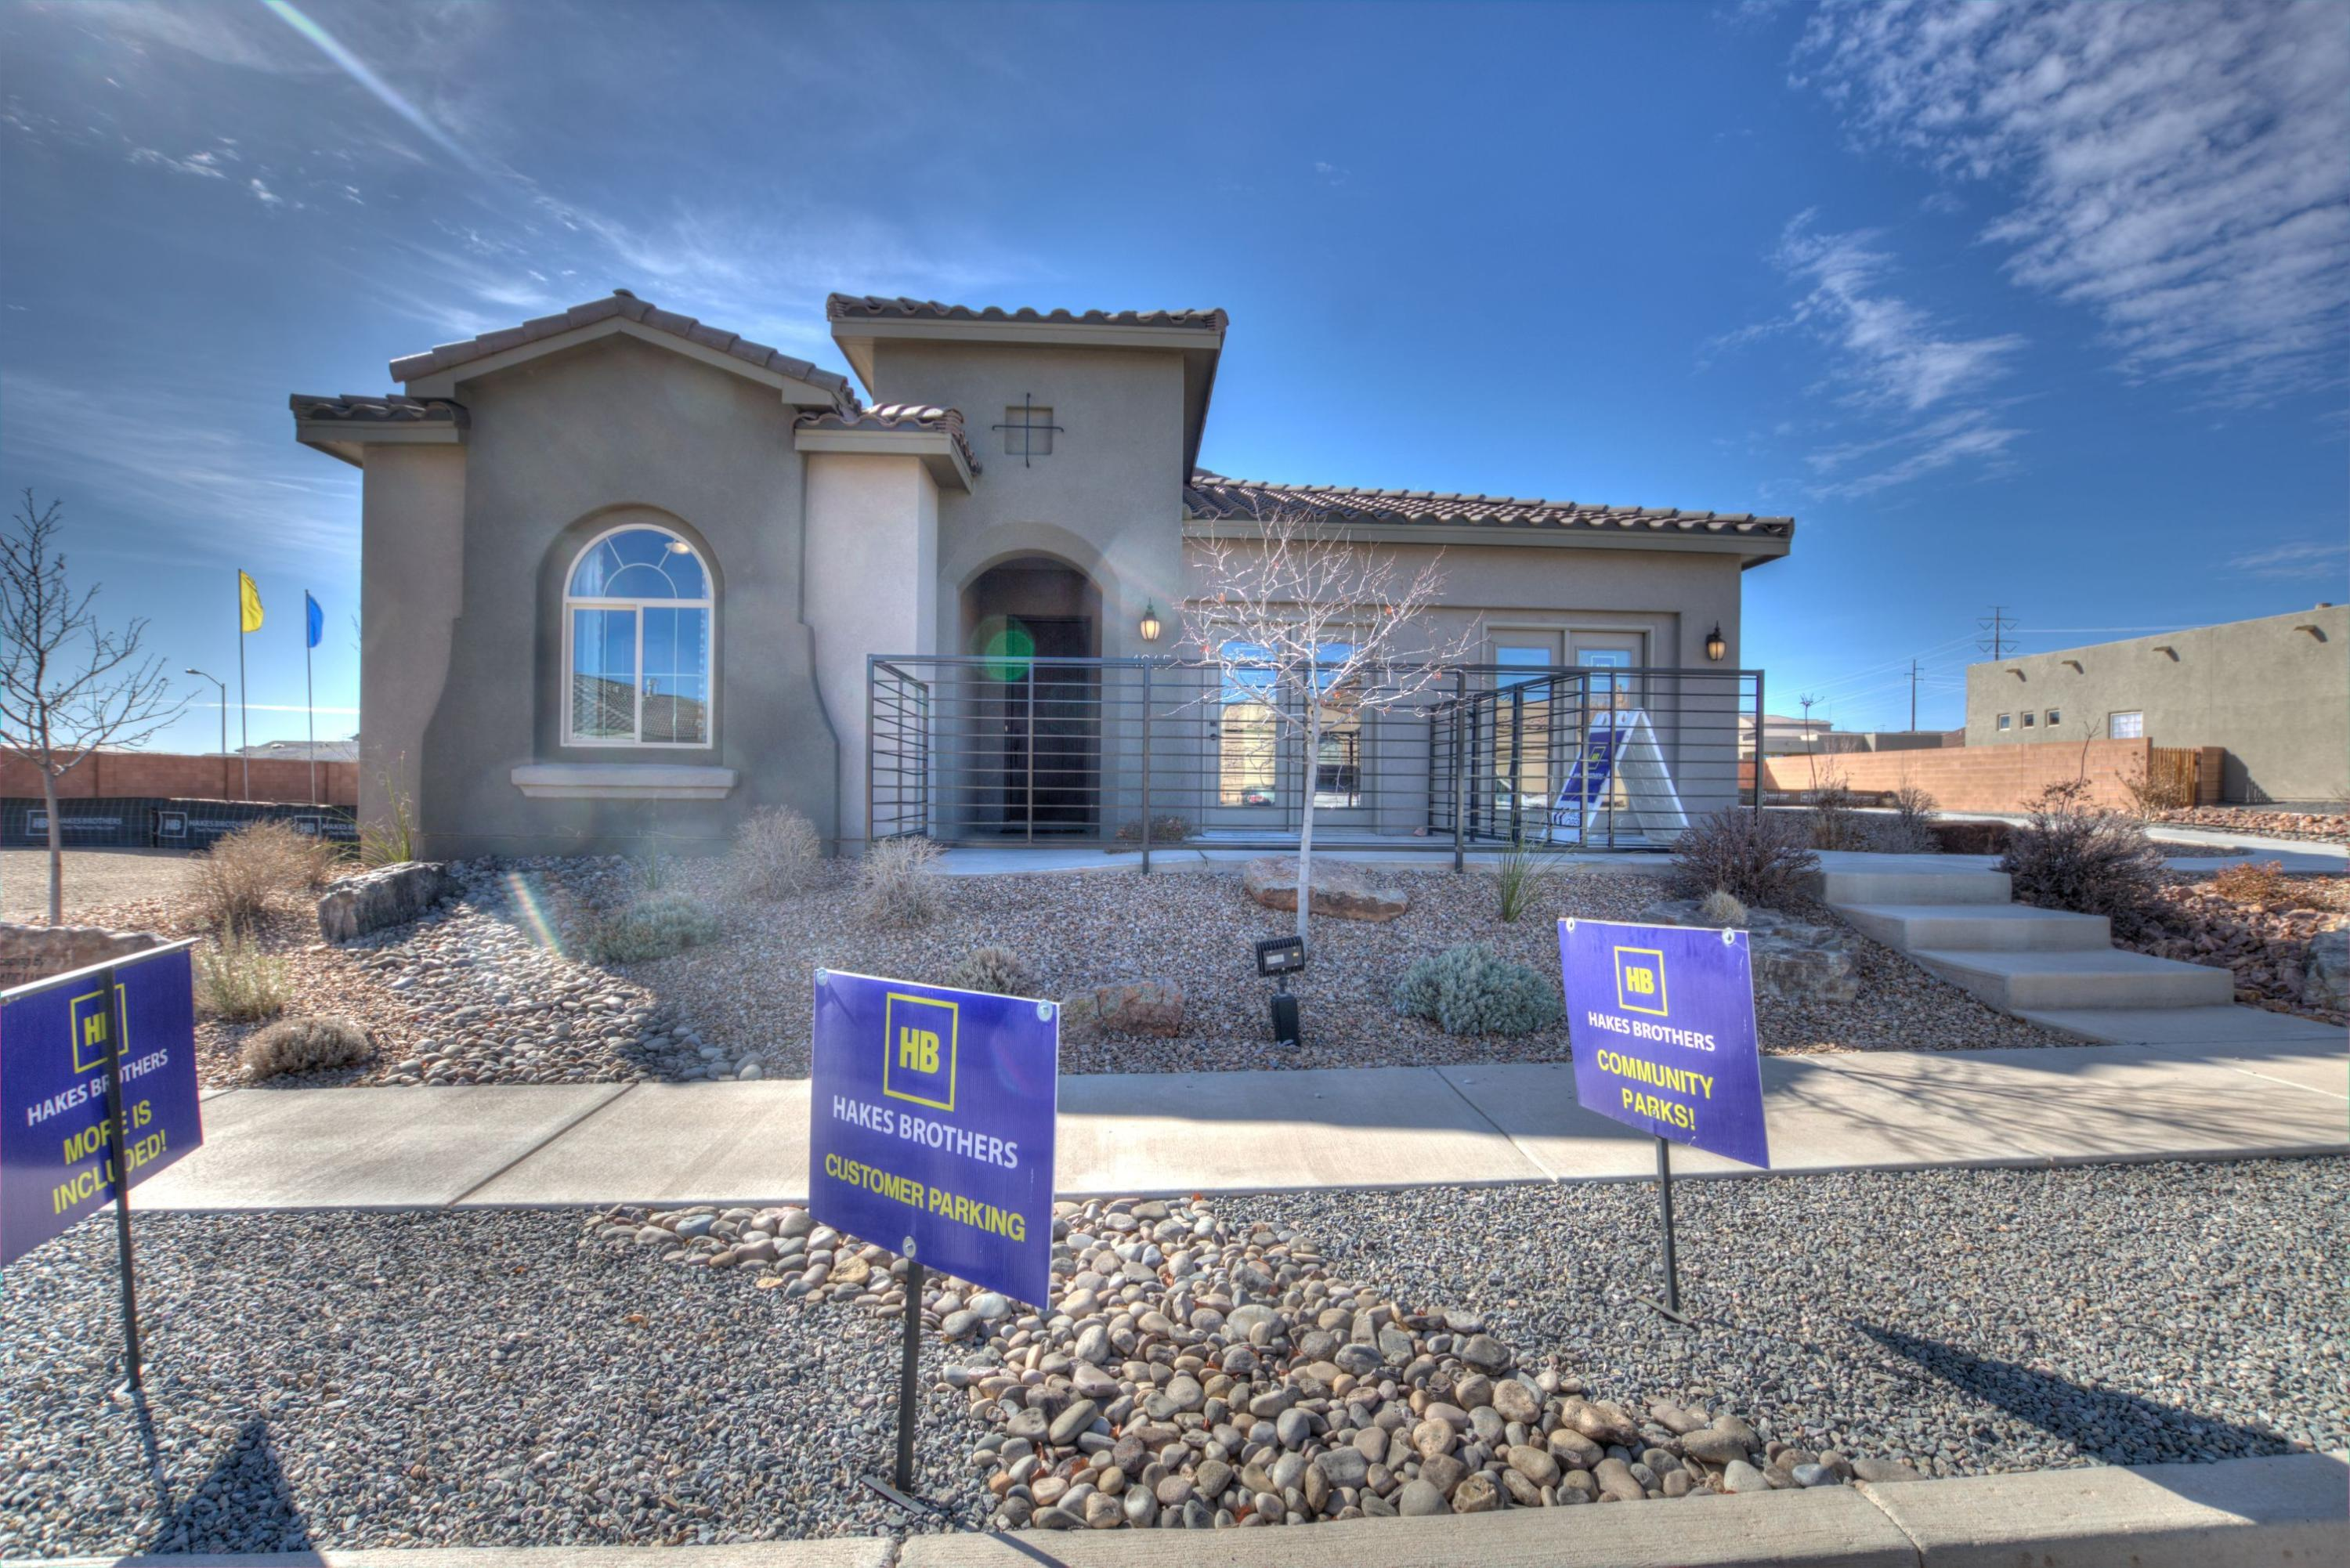 MODEL HOME FOR SALE All the bells and whistles 3 br 2119 sf, 2.5 baths, Gourmet Kitchen, 8' doors, Ceiling beams, 36'' tiled fireplace, and Tiled walkin shower.  2 car garageLeaseback, negotiable; minimum 2 years with our option to continue for another year.Backyard landscaped;